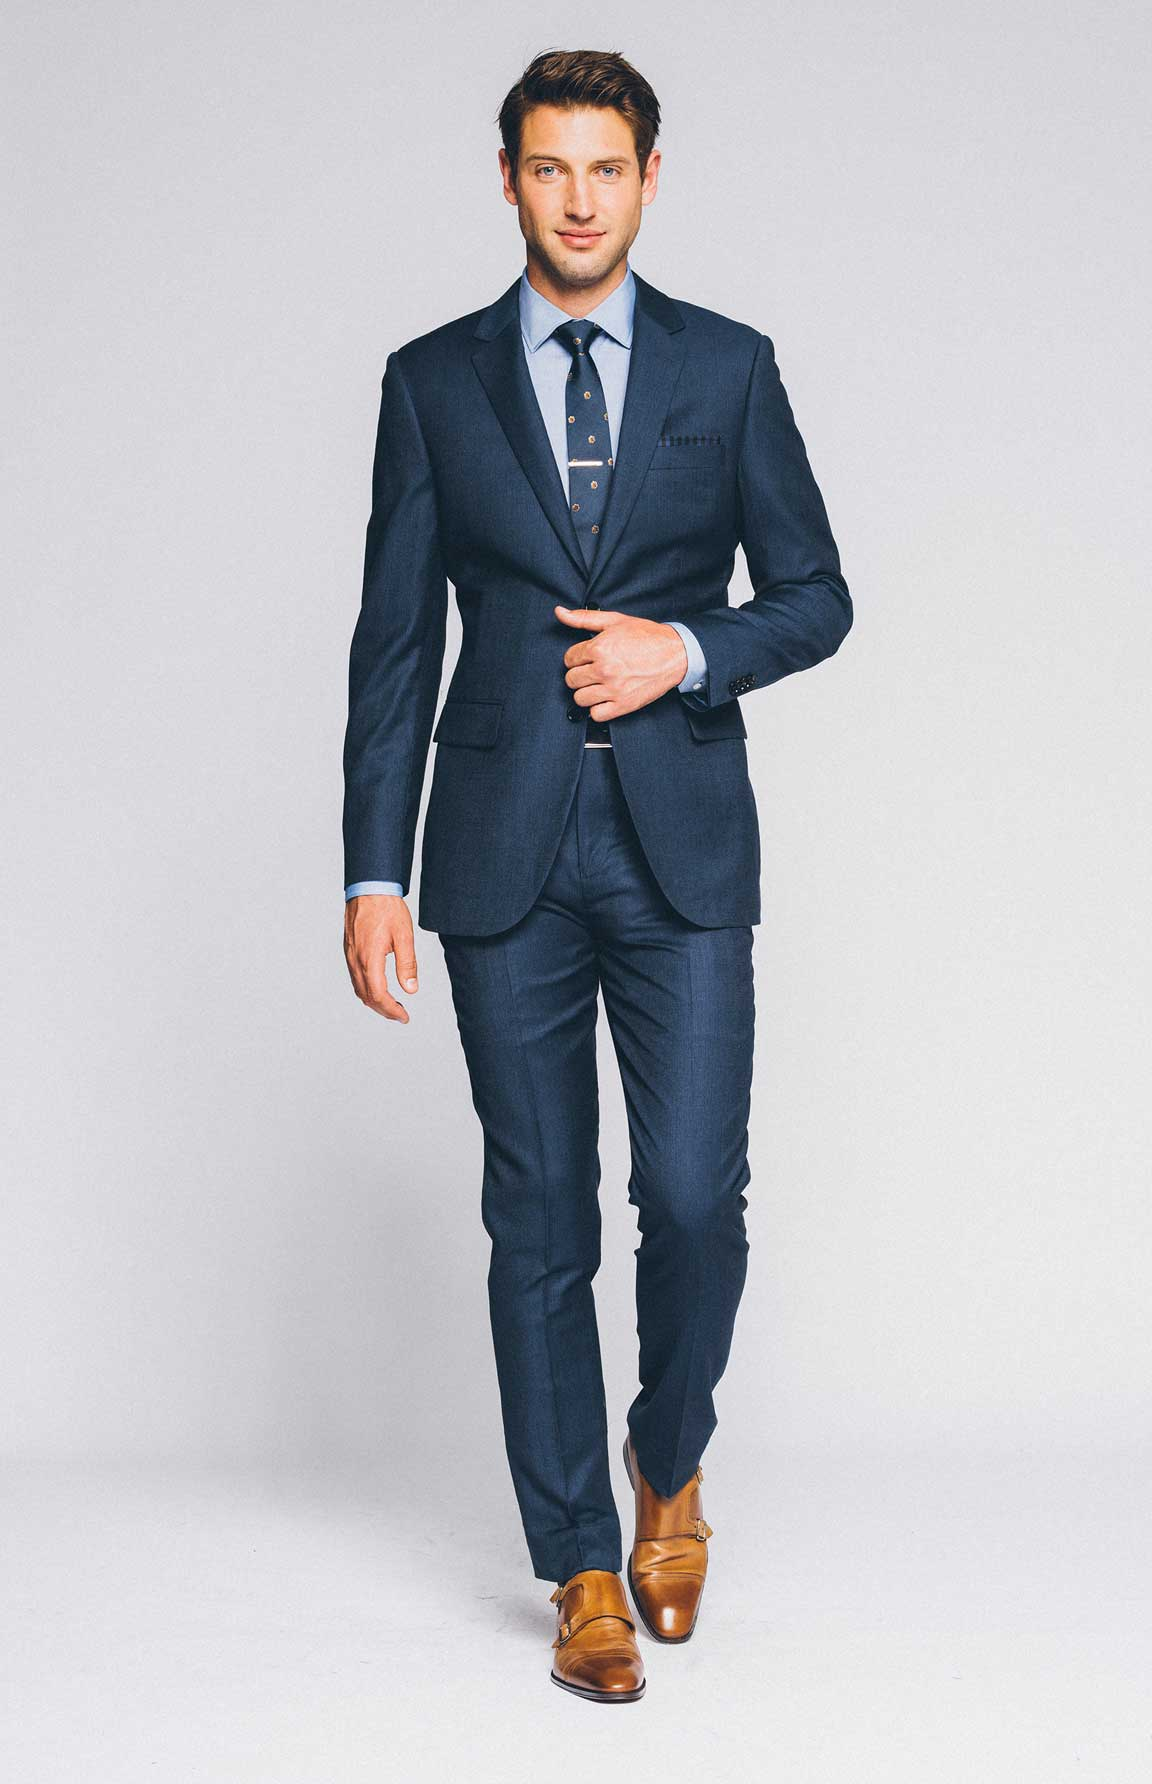 Dress to Impress: What to Wear on a First Date | Indochino Blog